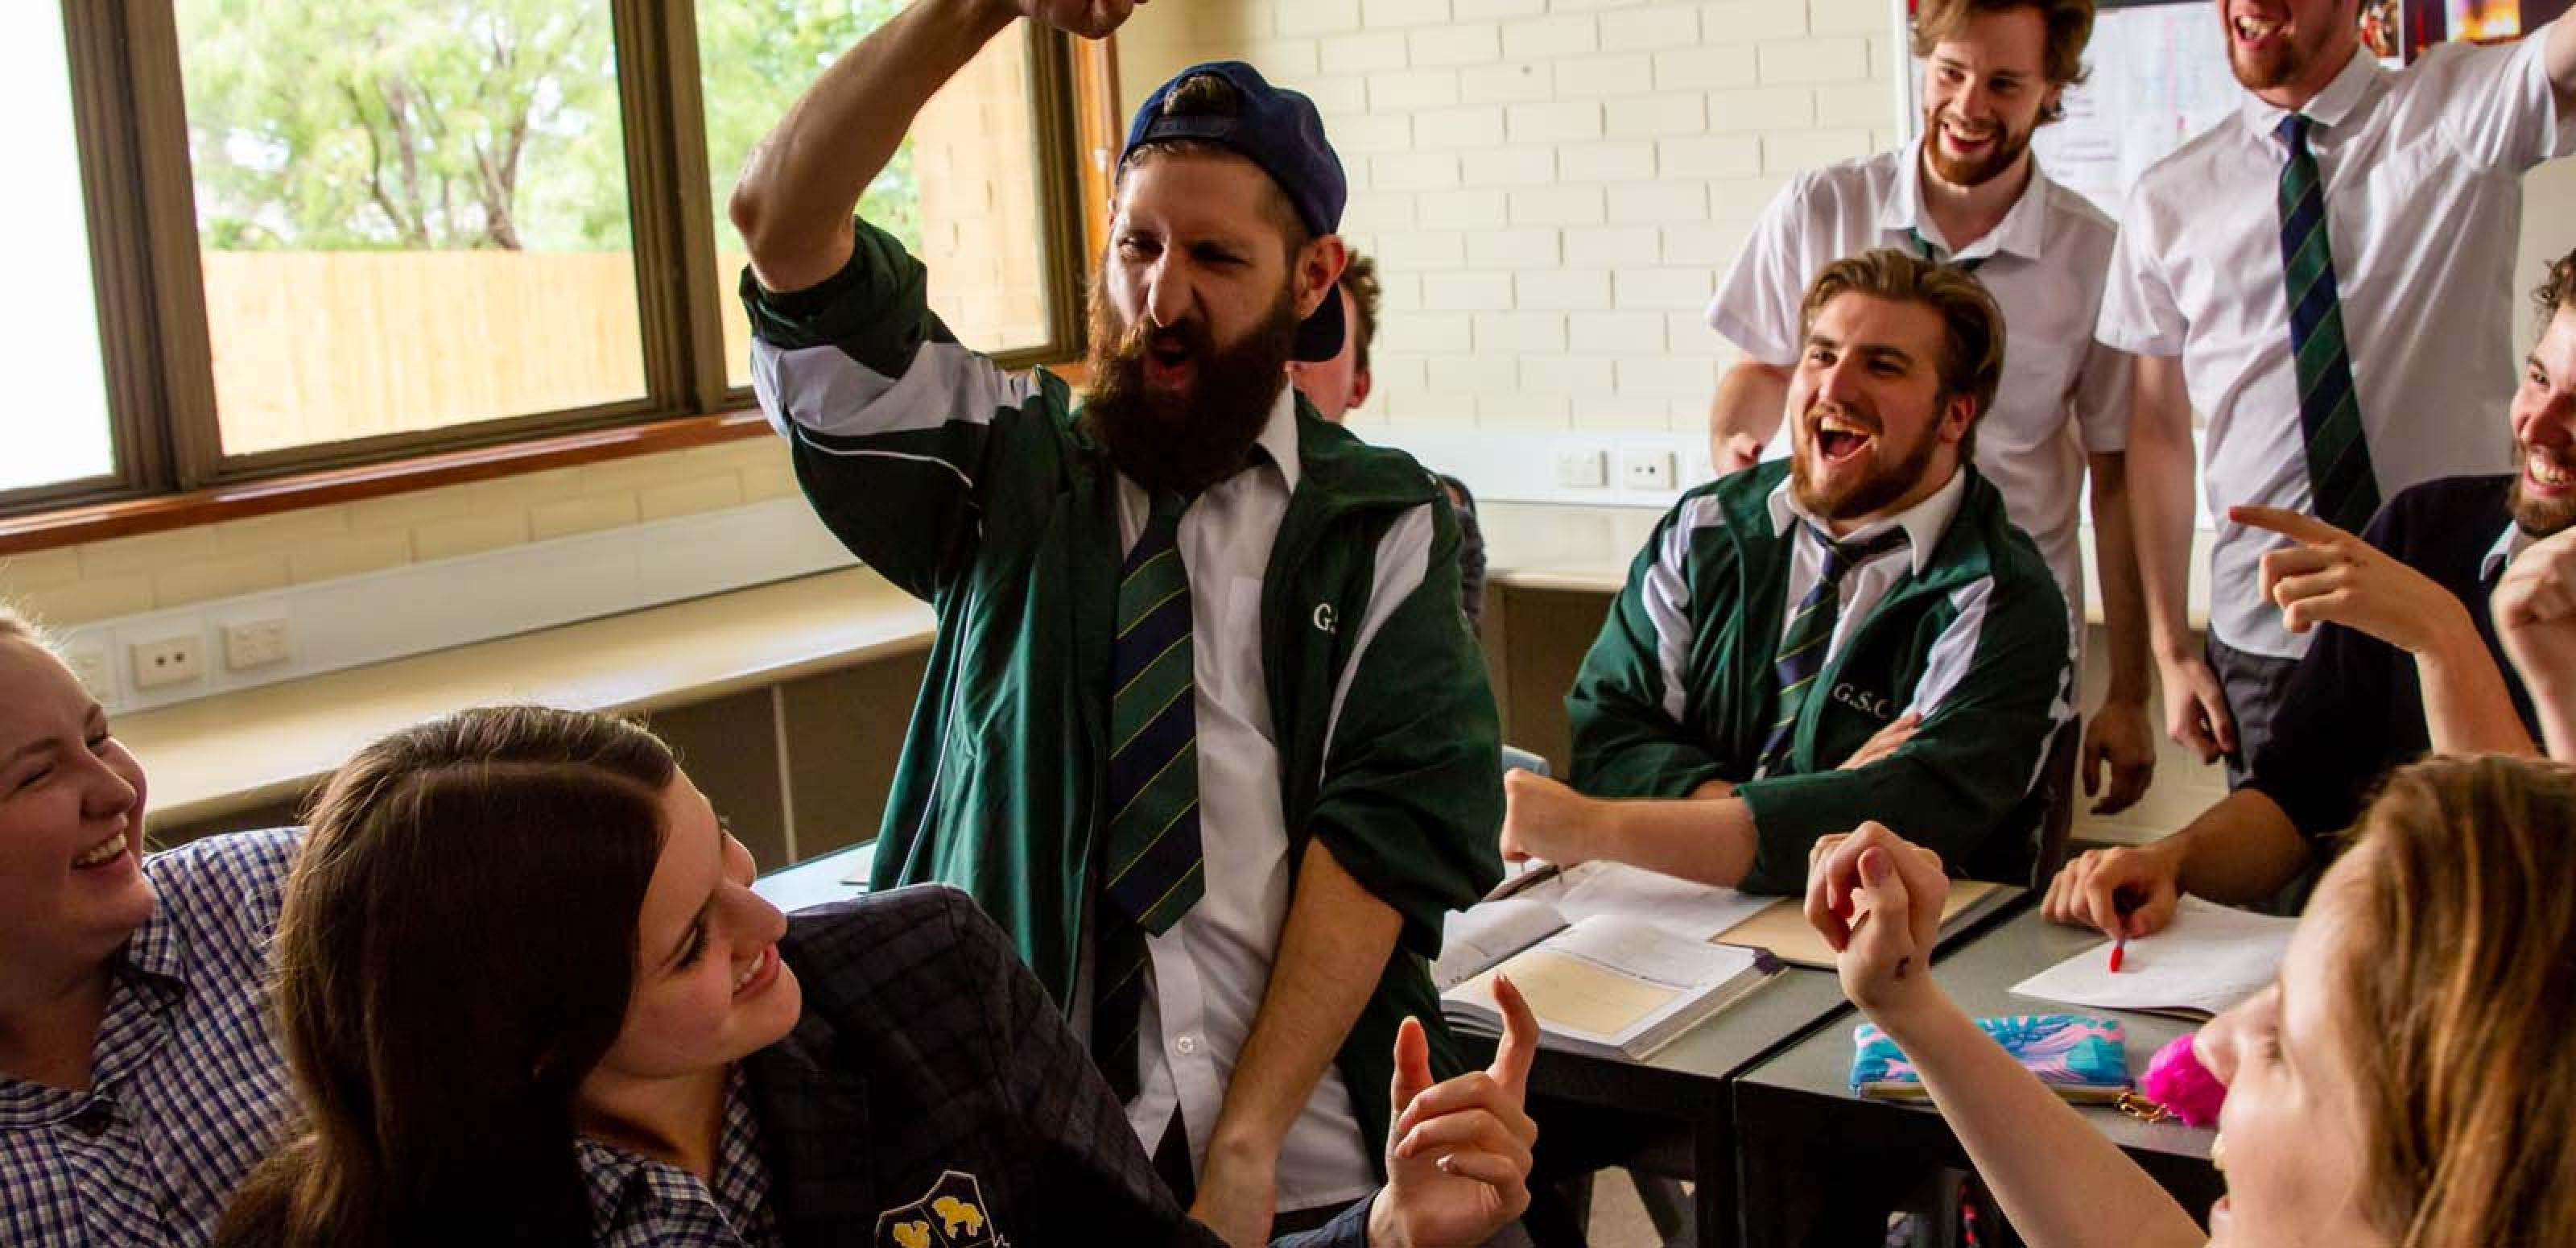 A group of high school students in uniform (including an older man with a beard) laughing and gesticulating